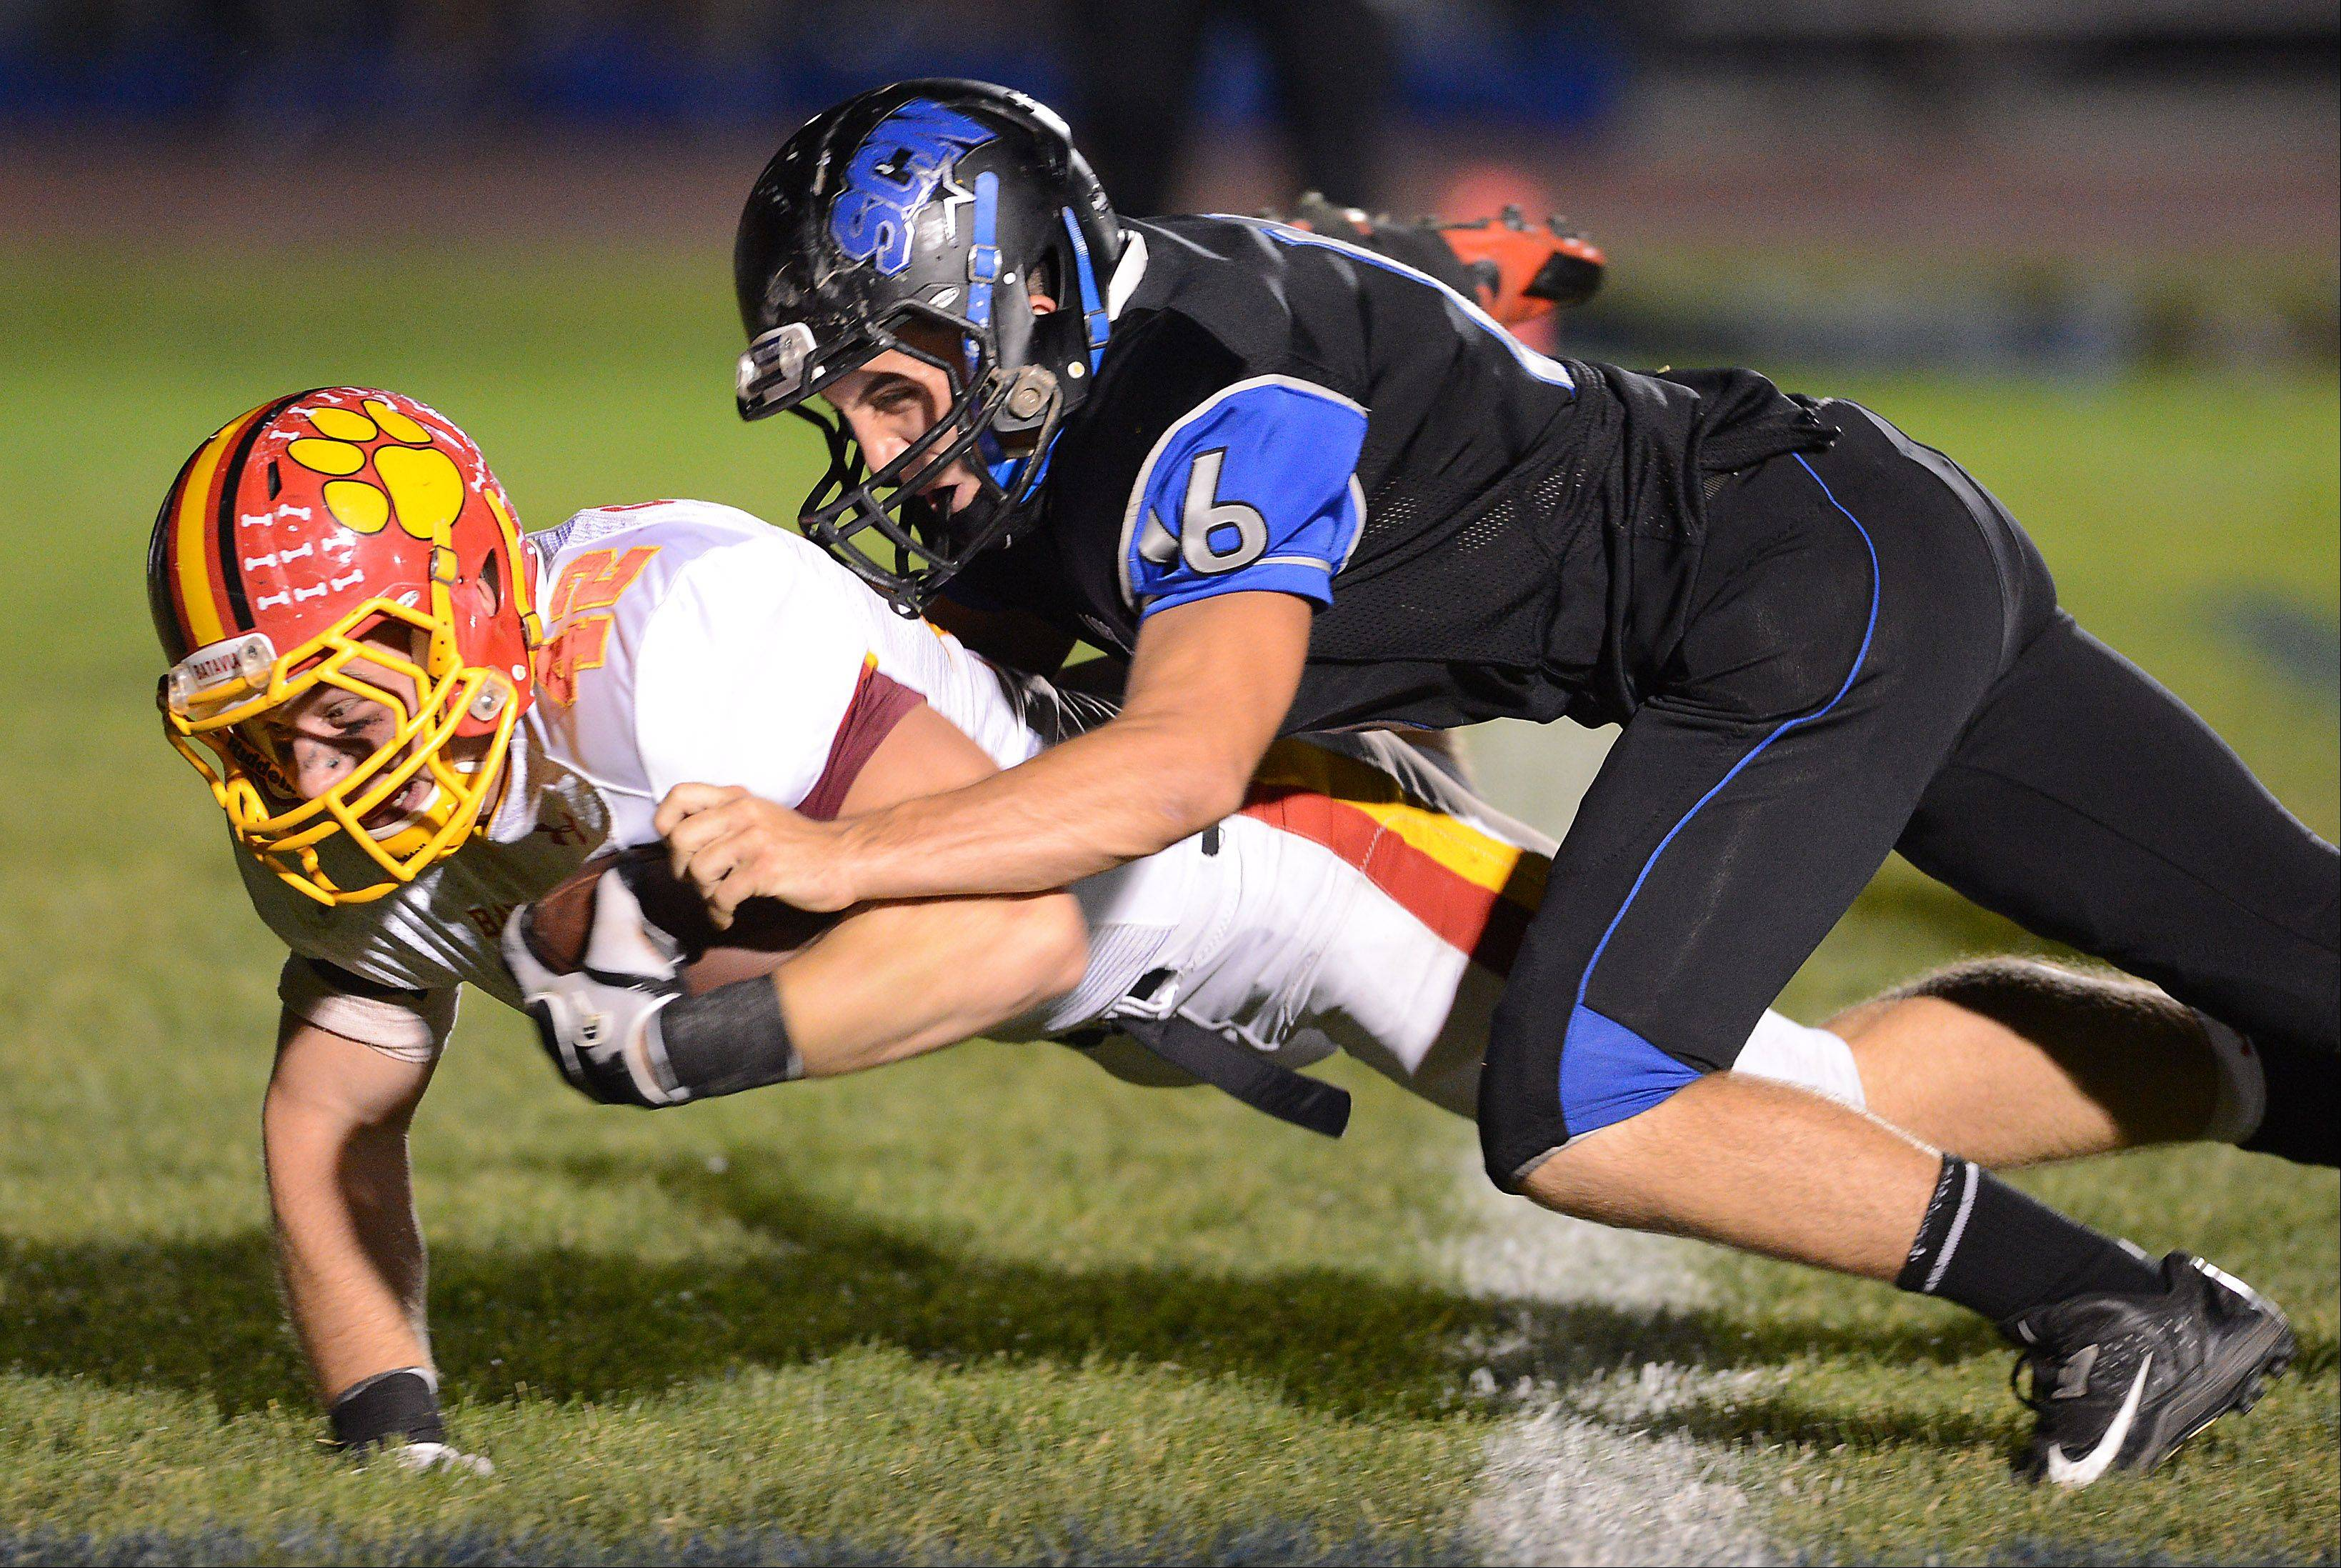 Batavia's Kevin Green dives across the goalline under pressure from St Charles North's Tyler Bell for a touchdown to put the Bulldogs up 19-0 .